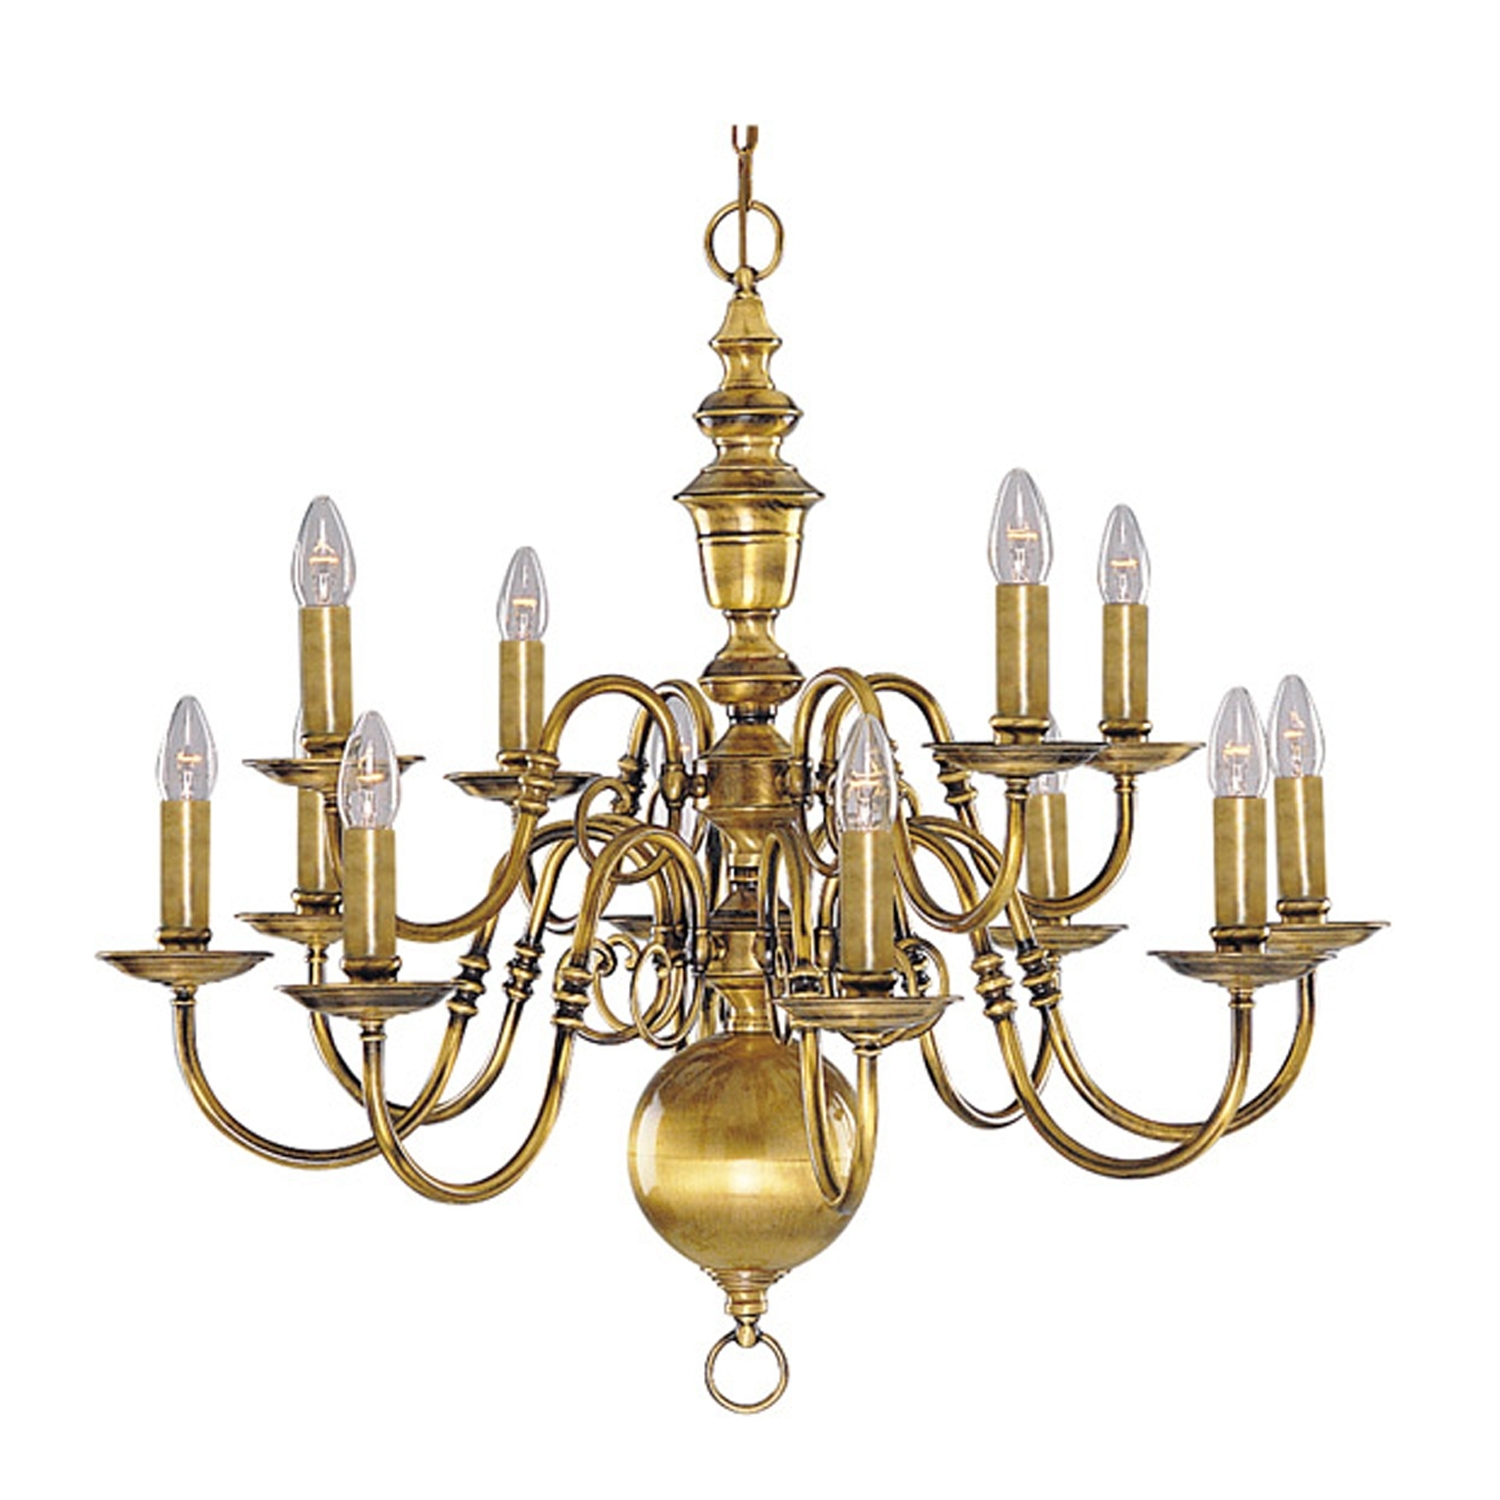 Old Brass Chandeliers In Current Chandeliers Design : Wonderful Interesting Antique Brass Chandelier (View 9 of 15)